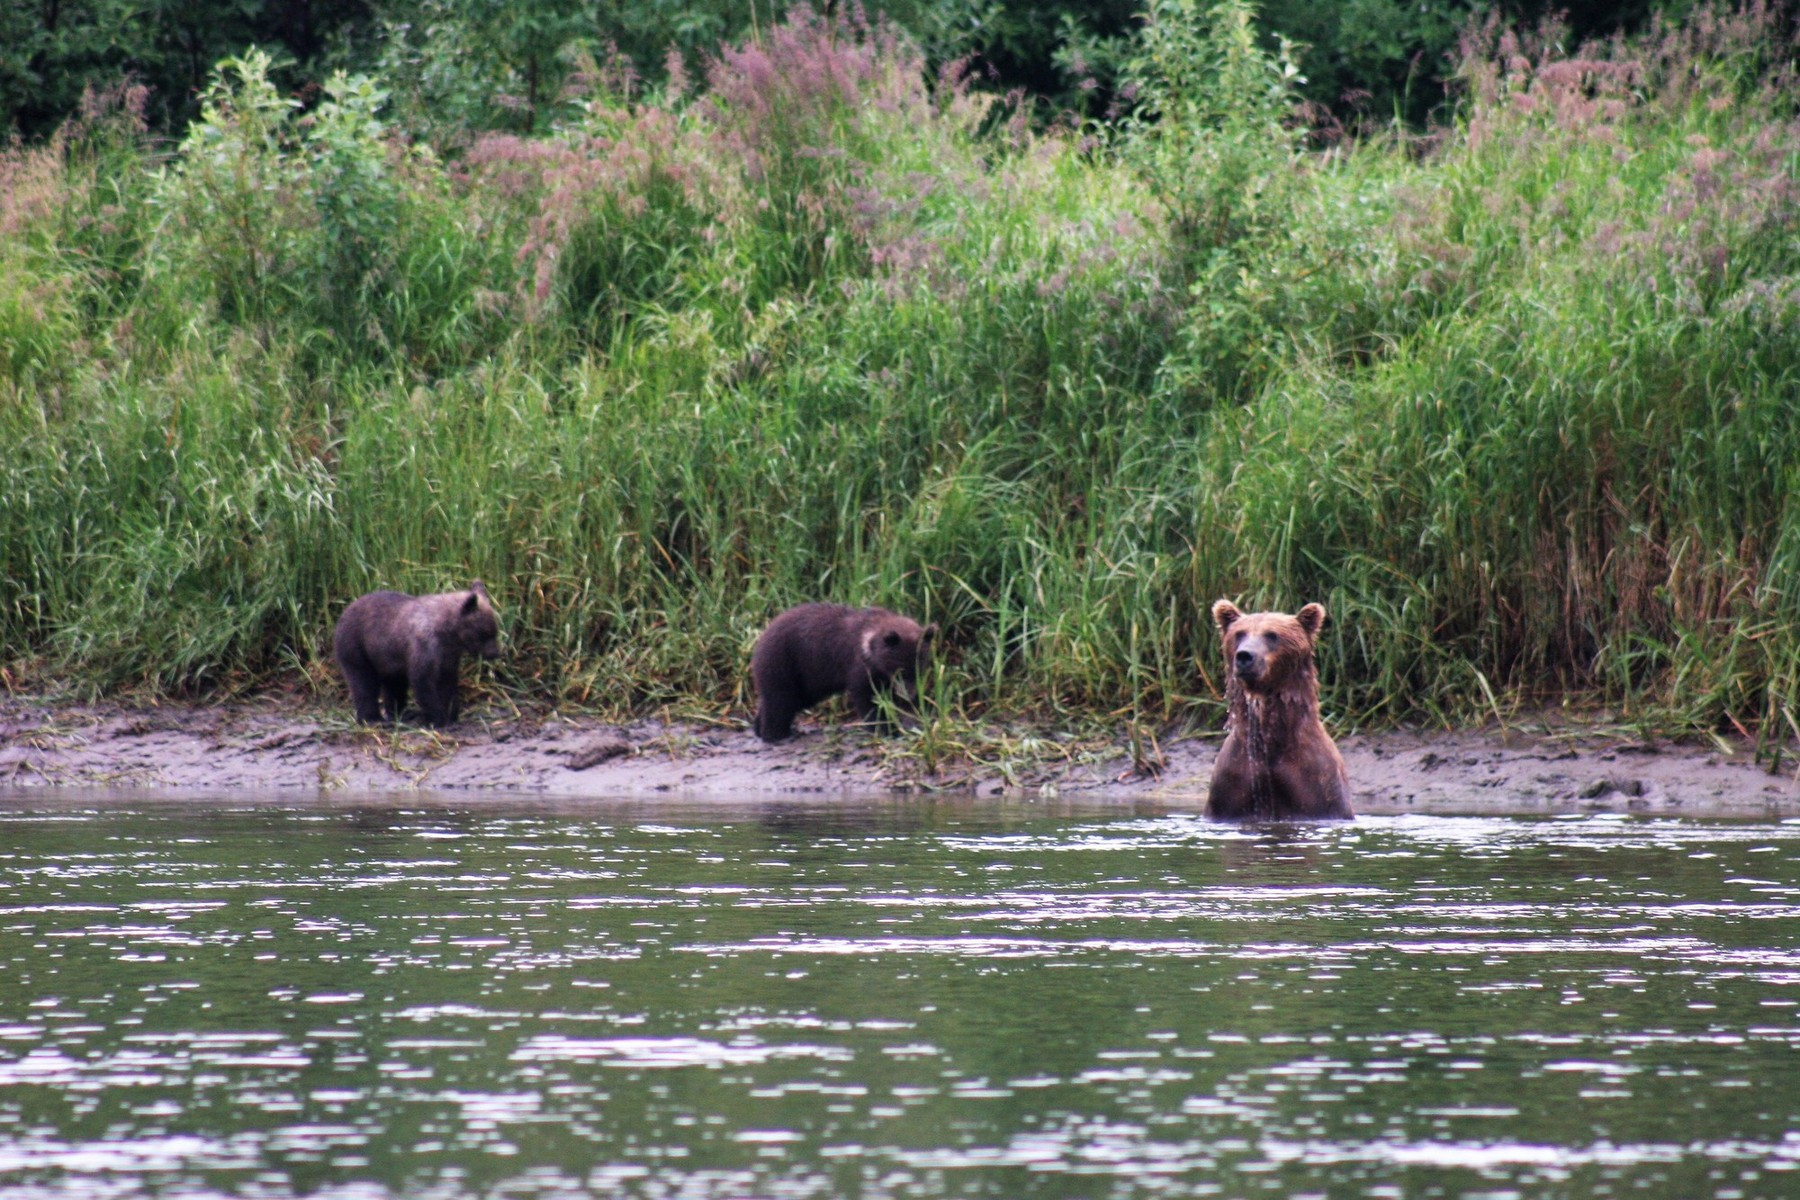 Mother bear fishing for cubs